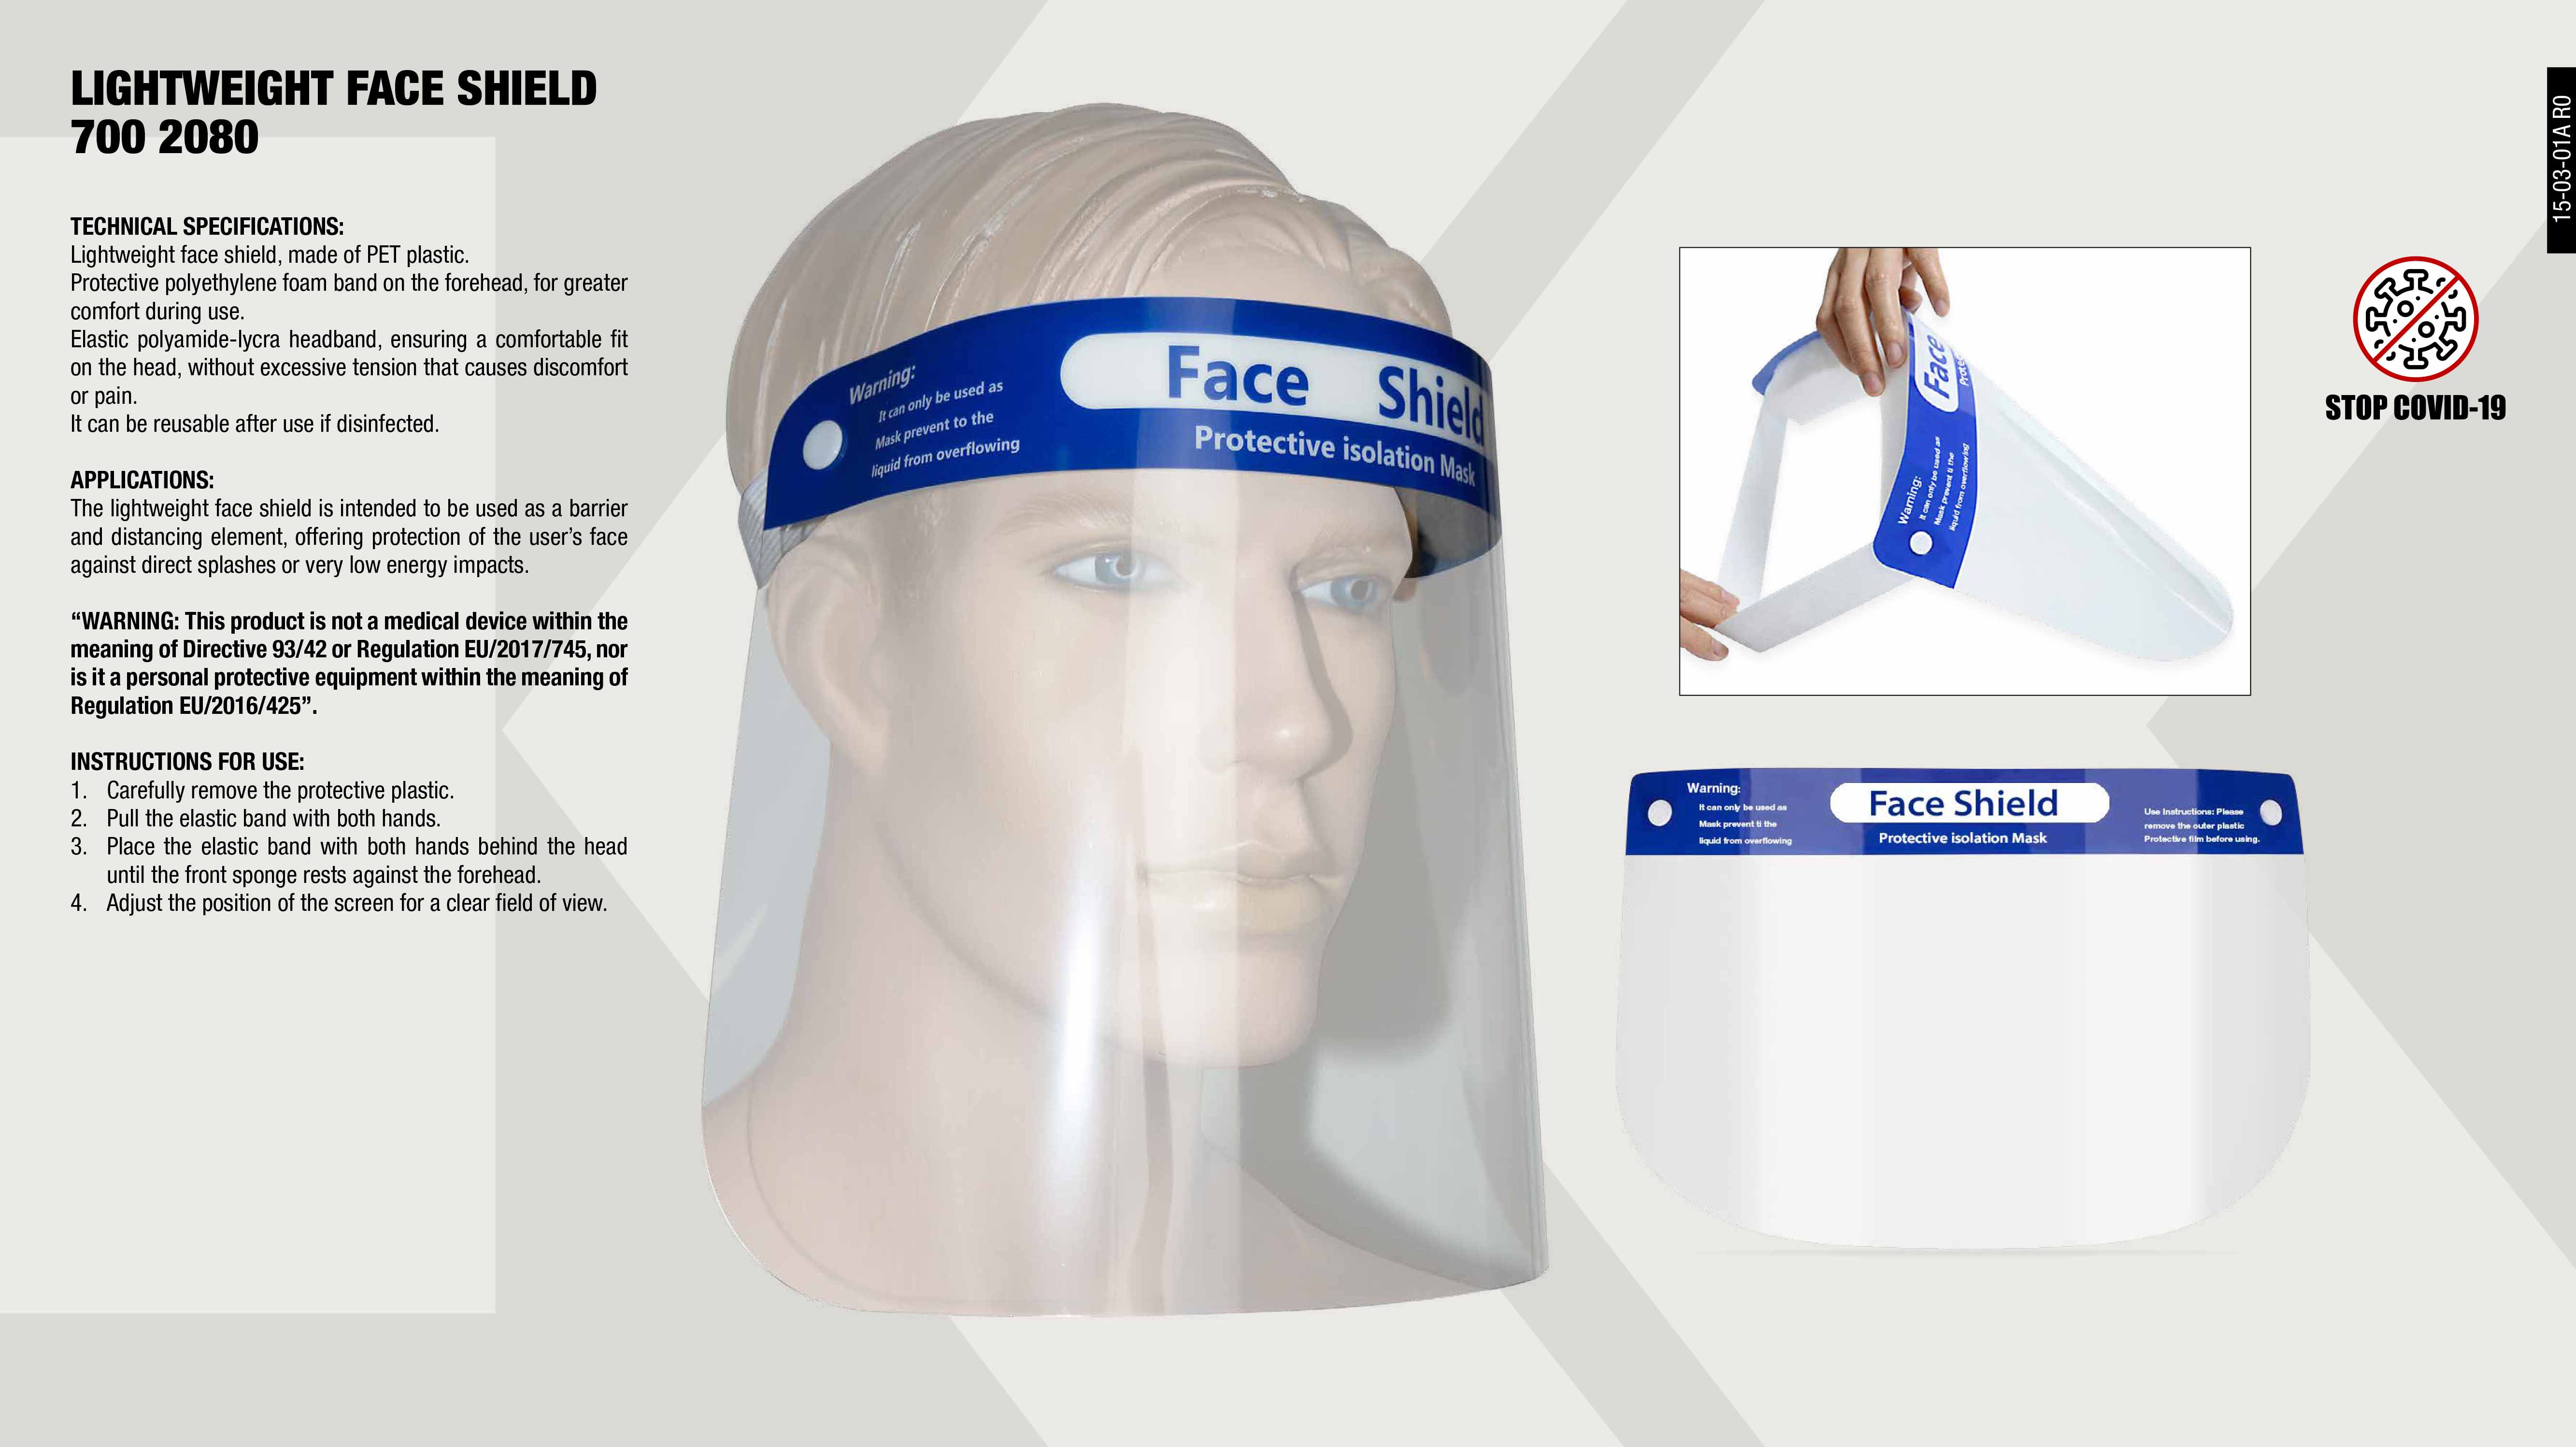 VINILE DISPOSABLE GLOVE - SIZE 7 1/2                        ,  									LATEX DISPOSABLE GLOVES S-9 1/2                             ,  									VINILE DISPOSABLE GLOVES - S-9 1/2                          ,  									LATEX DISPOSABLE GLOVES S-8 1/2                             ,  									VINILE DISPOSABLE GLOVES - S-8 1/2                          ,  									LATEX DISPOSABLE GLOVES S-7 1/2                             ,